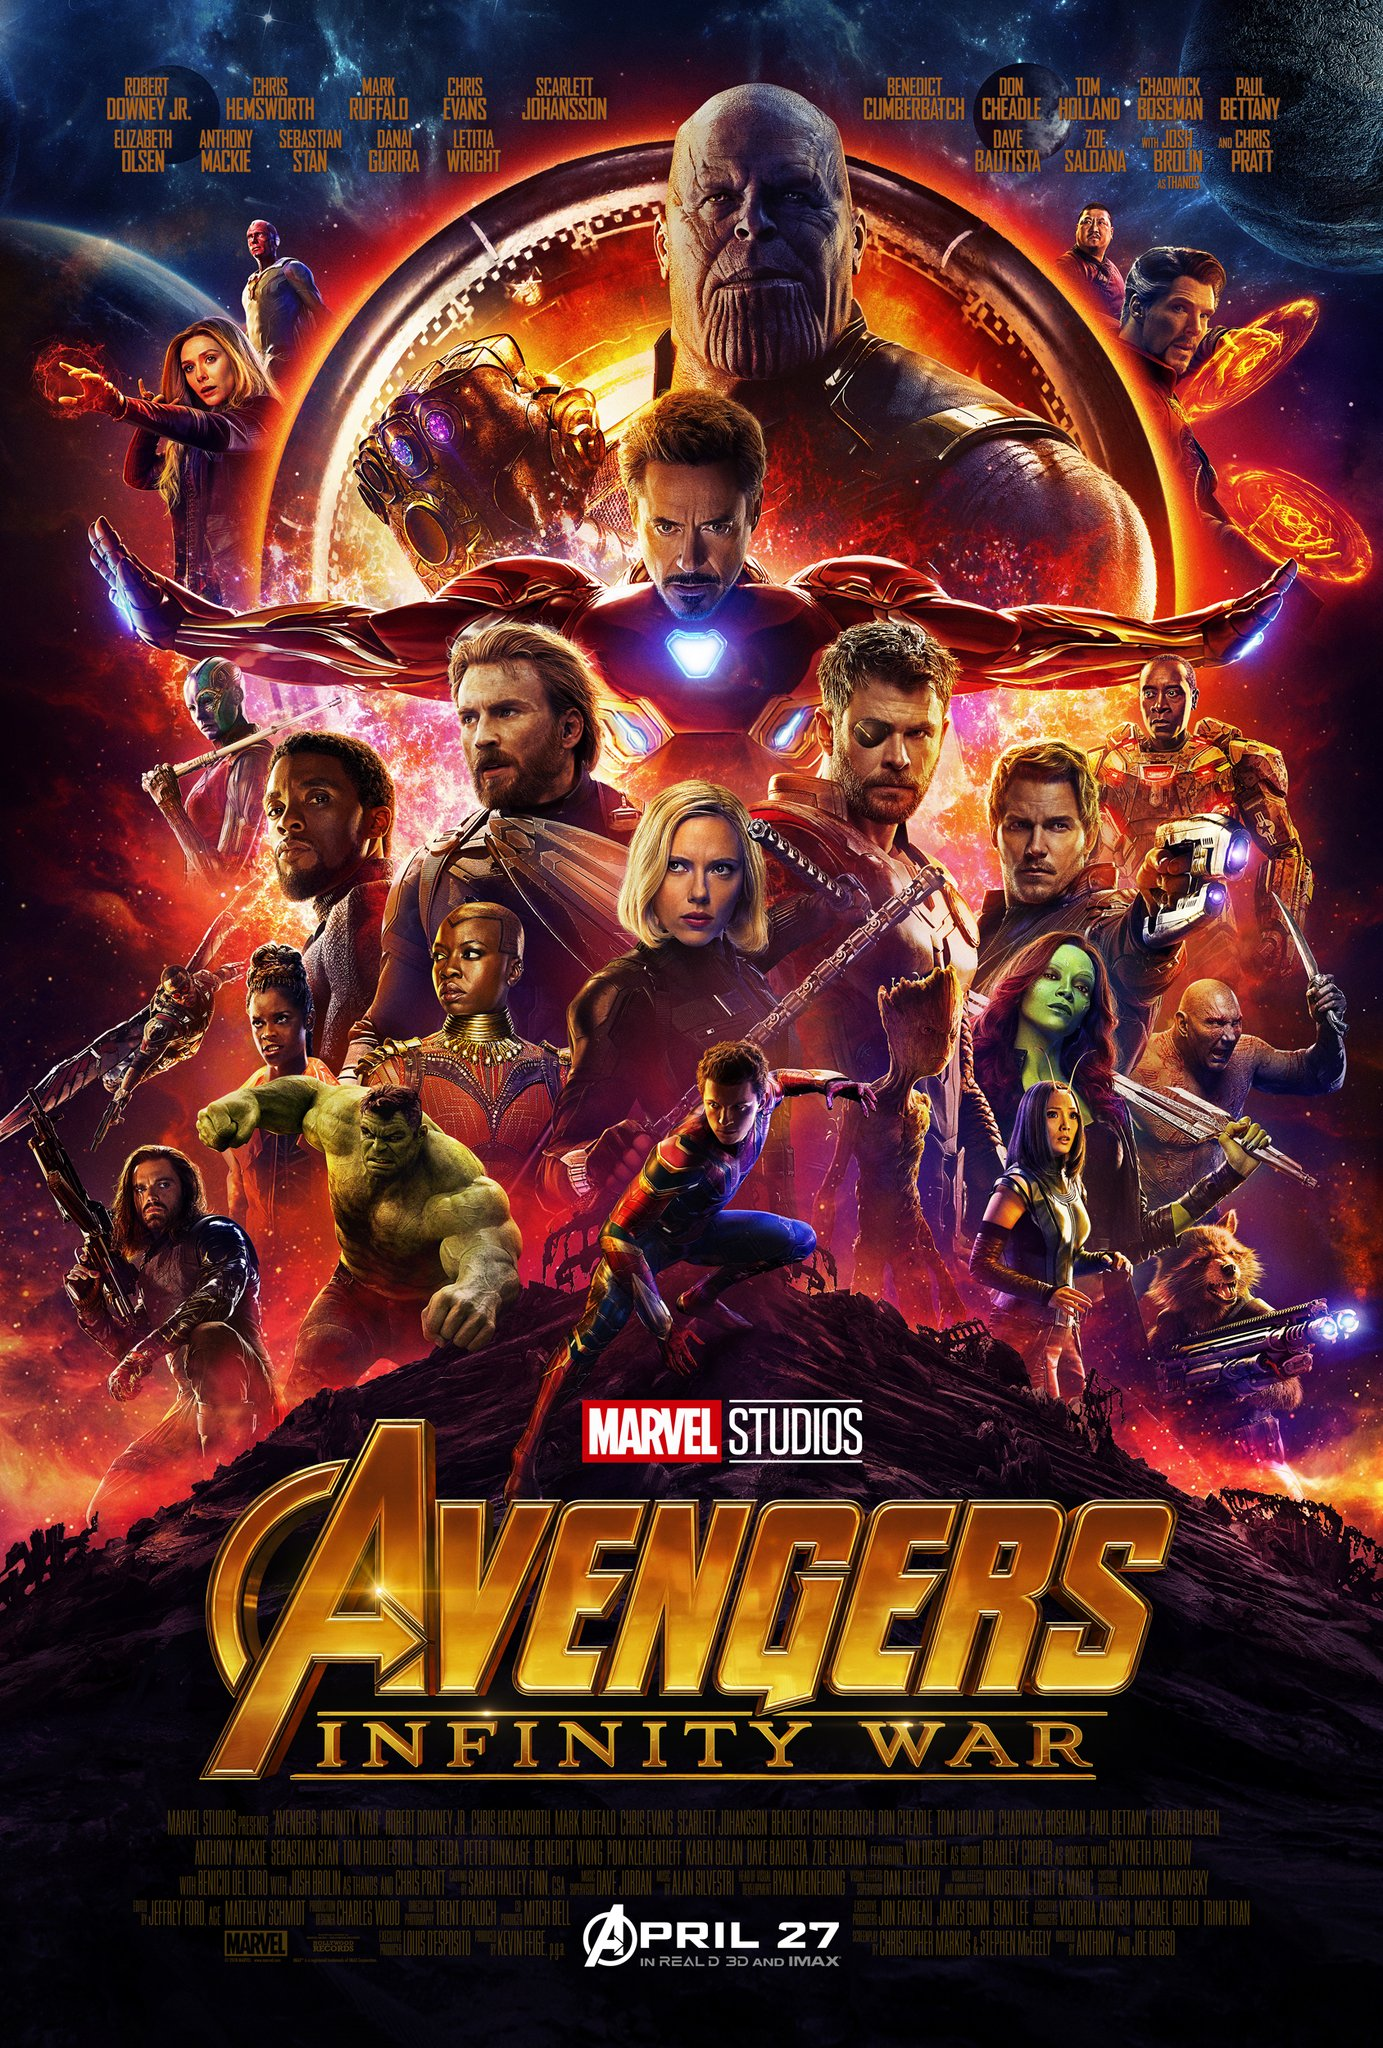 epic-poster-released-for-avengers-infinity-war-packs-in-a-ton-of-characters1.jpg